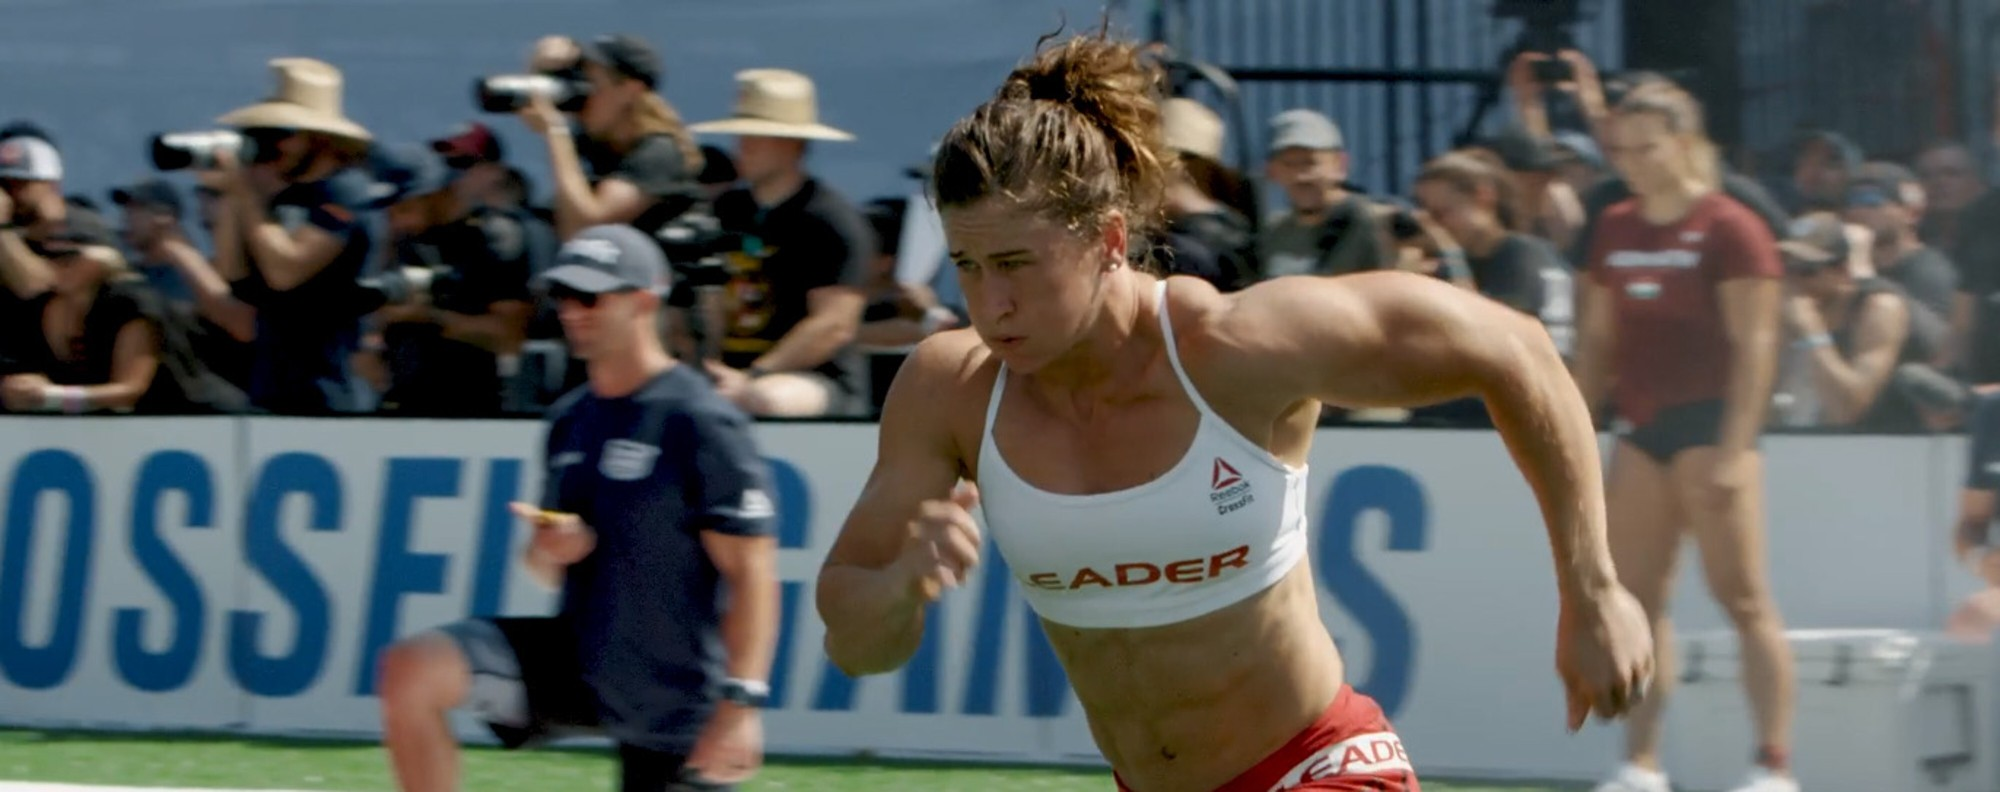 Tia-Clair Toomey, three time winner of the CrossFit Games, says her future in the sport is in question until the leadership act. Photo: CrossFit Inc.